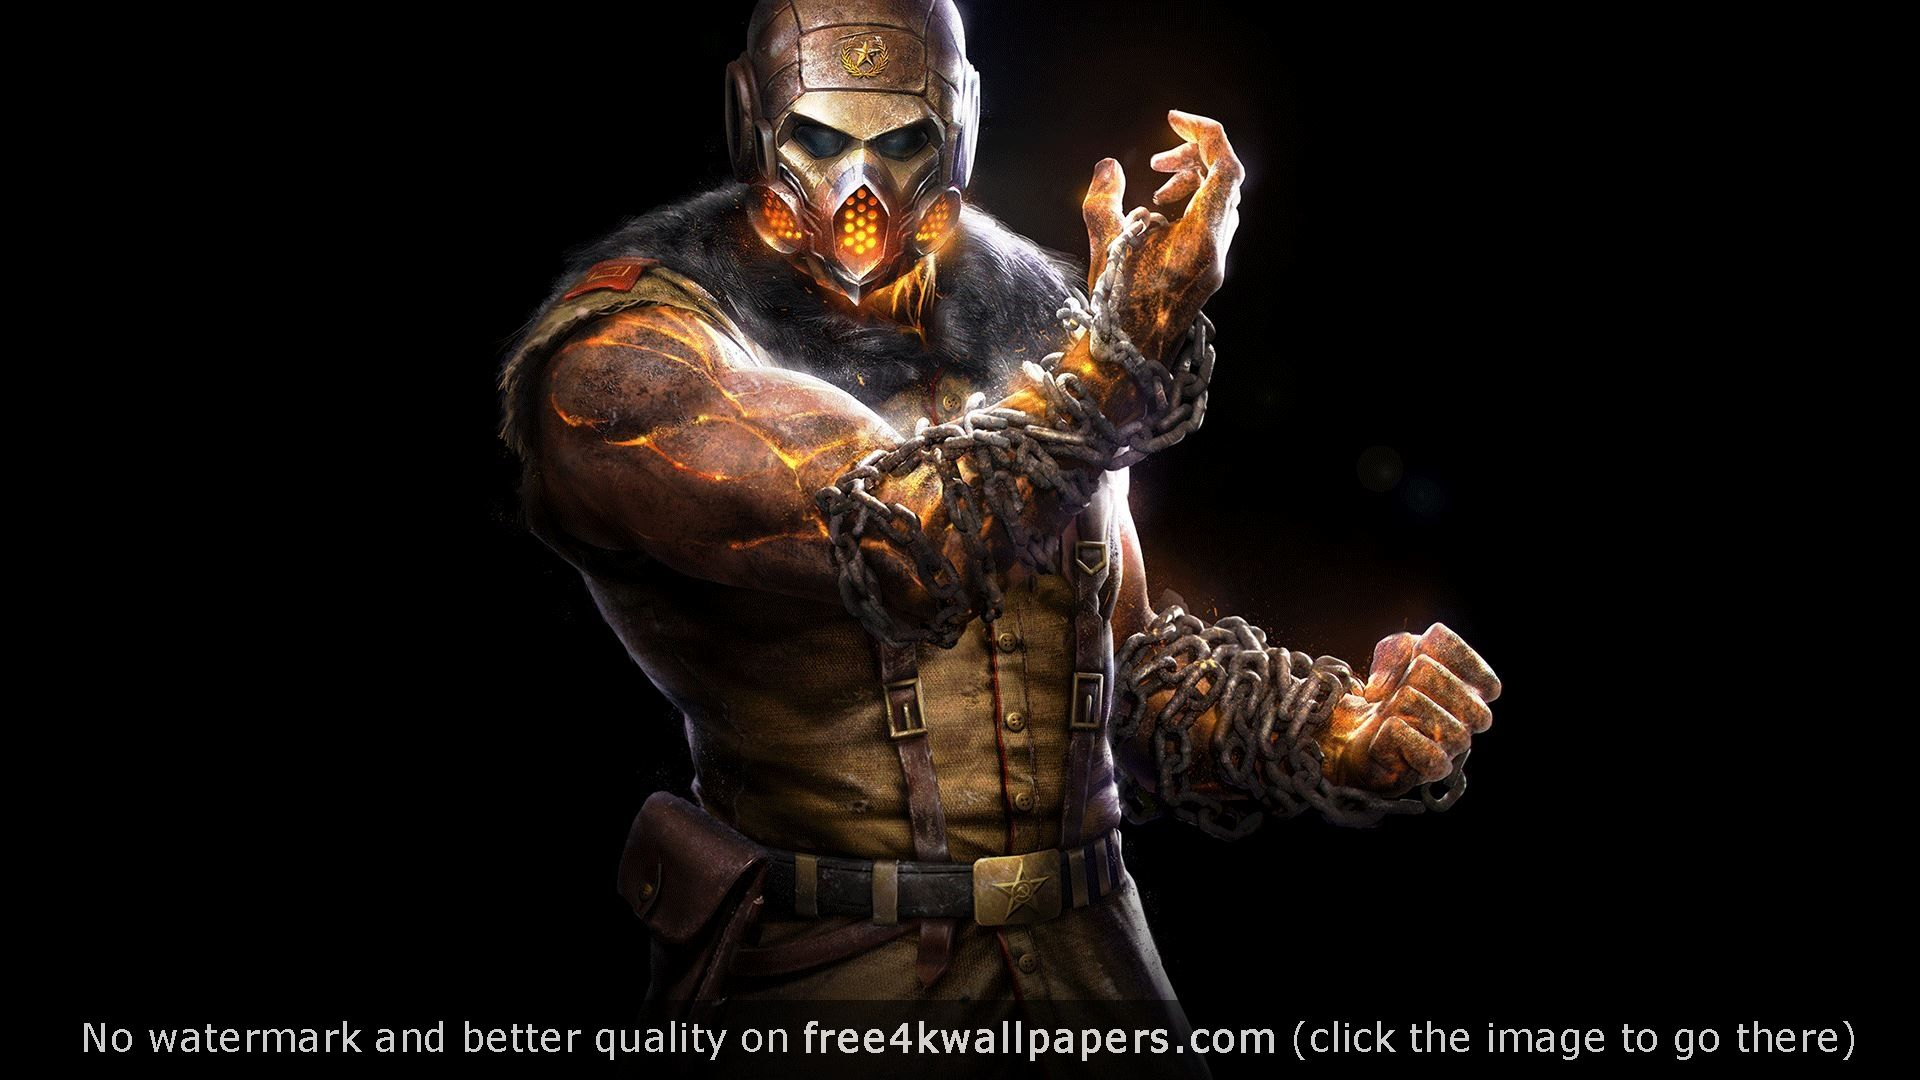 mortal kombat x kold war scorpion wallpaper | free wordpress themes